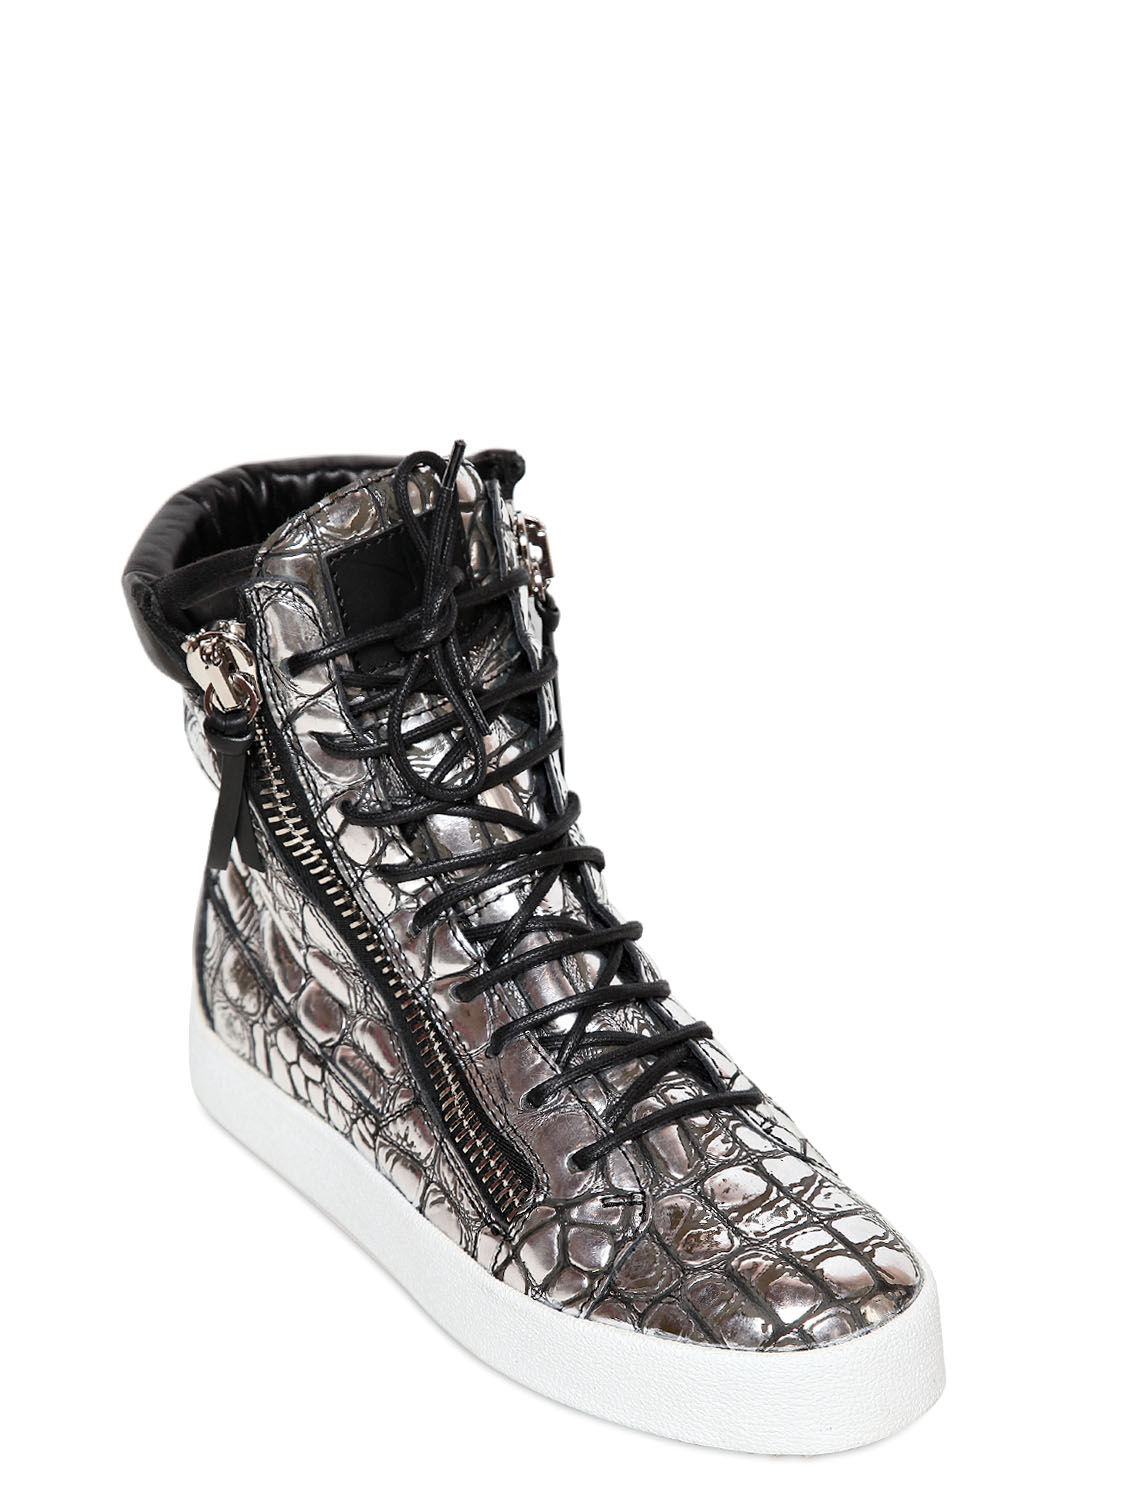 Rubber Rings For Men >> Lyst - Giuseppe Zanotti Croc Embossed Metallic Leather Sneakers in Metallic for Men